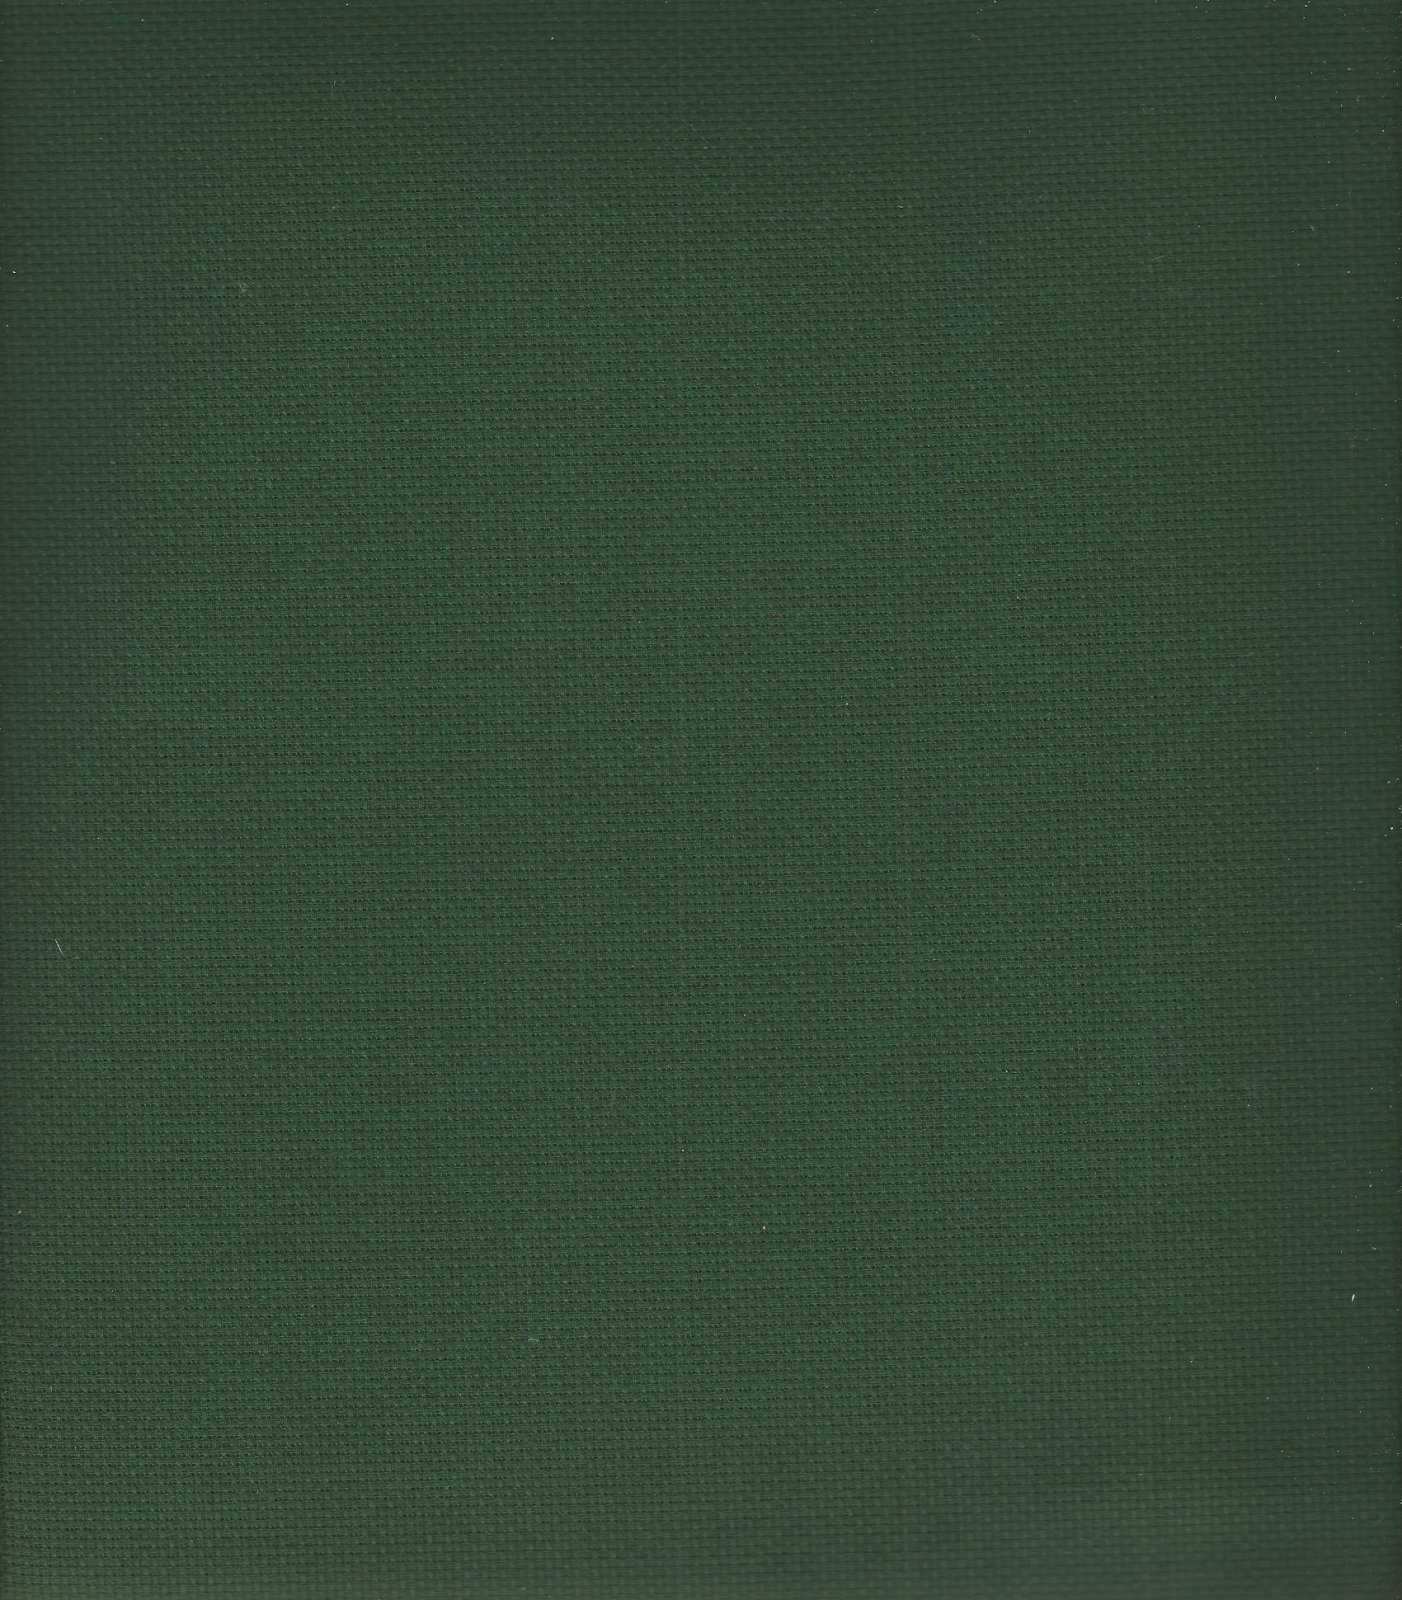 Aida 18ct Christmas Green (discontinued color)